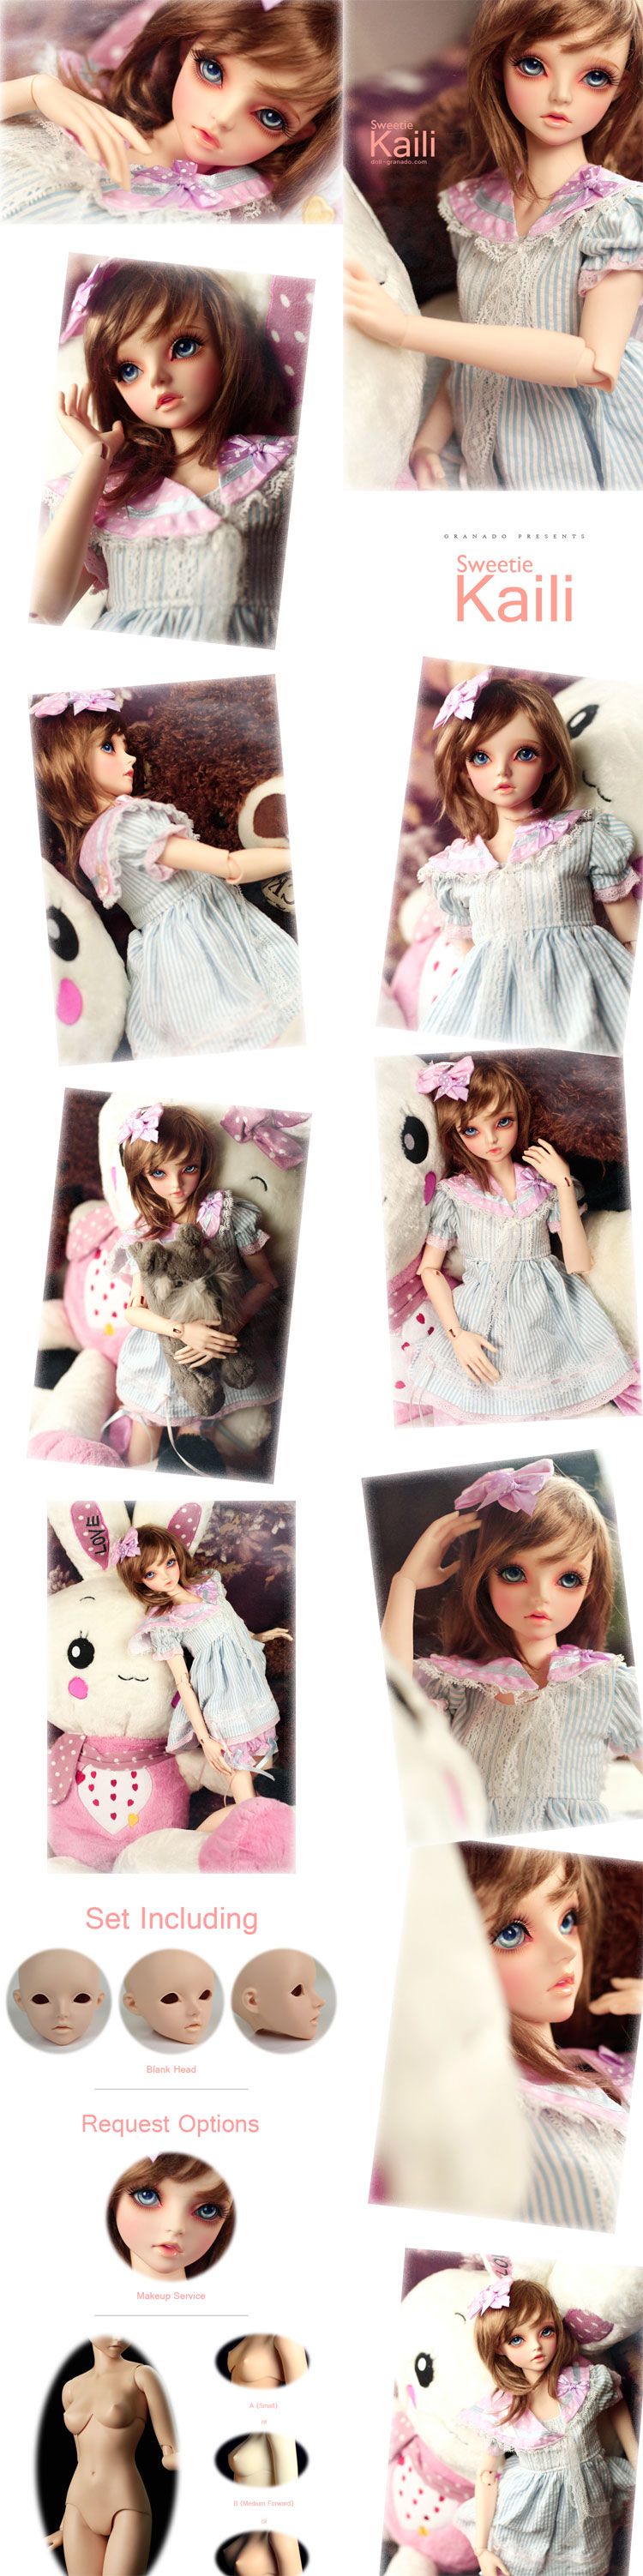 BJD Sweetie Kaili 58.3cm Girl Body Ball-jointed doll